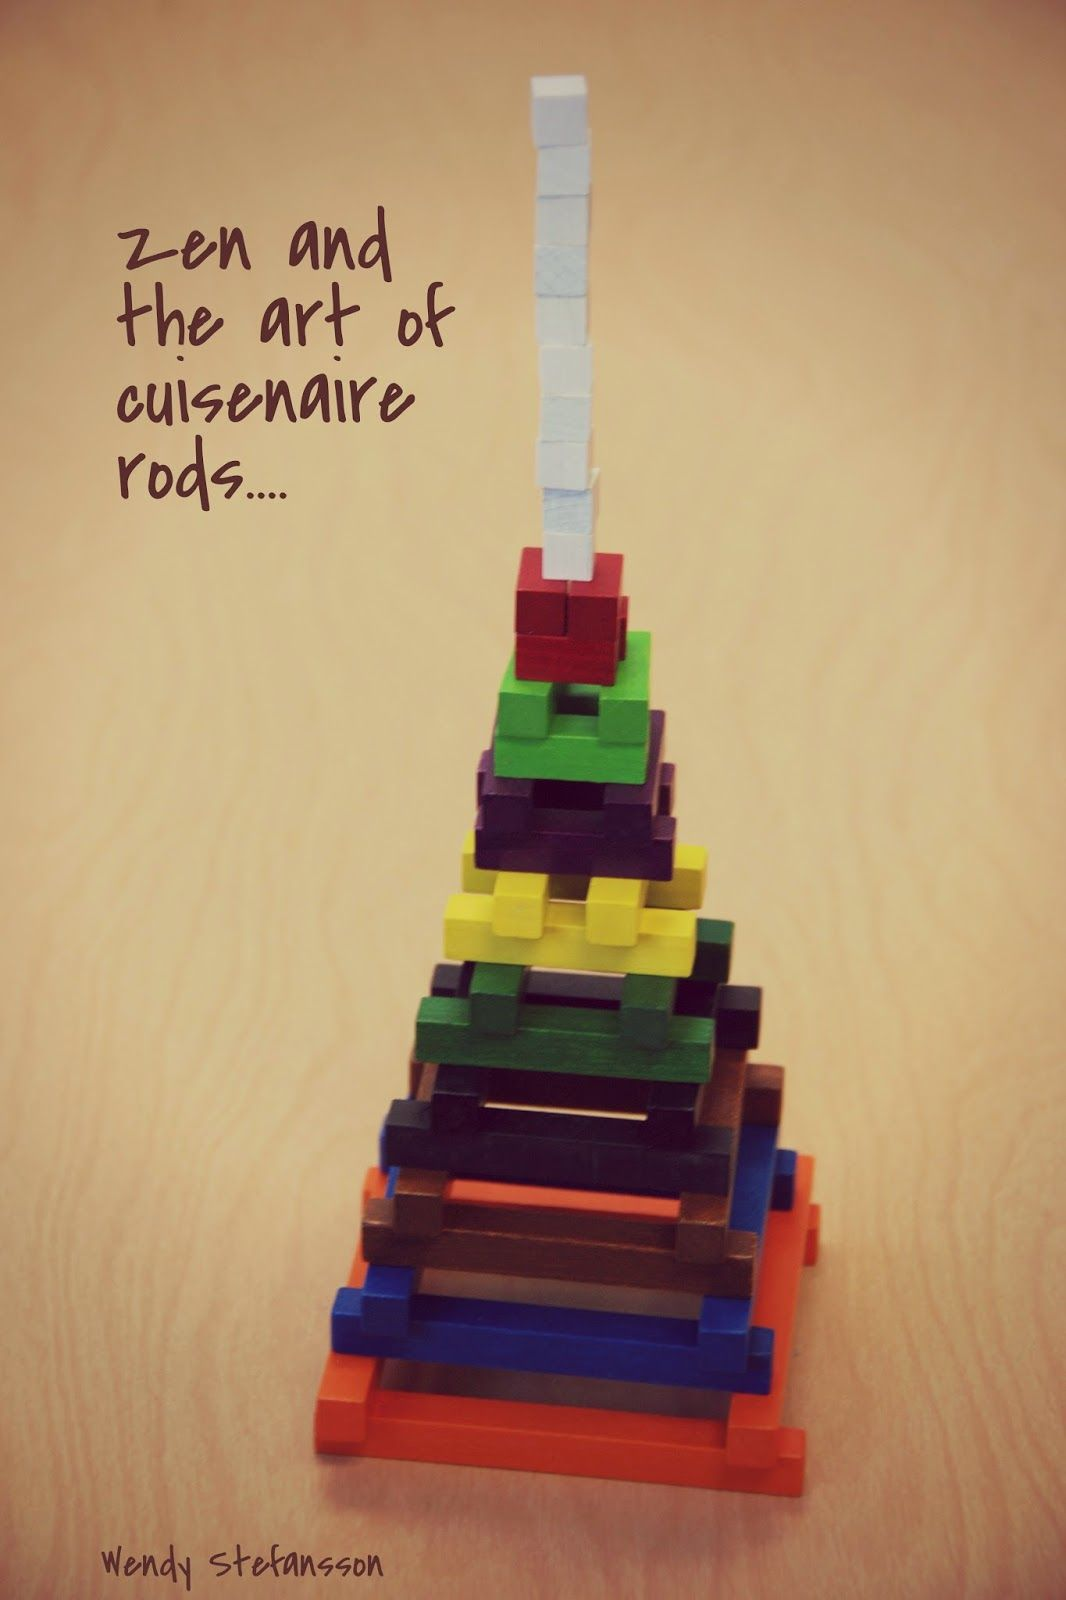 Learning Out Loud Zen And The Art Of Cuisenaire Rods